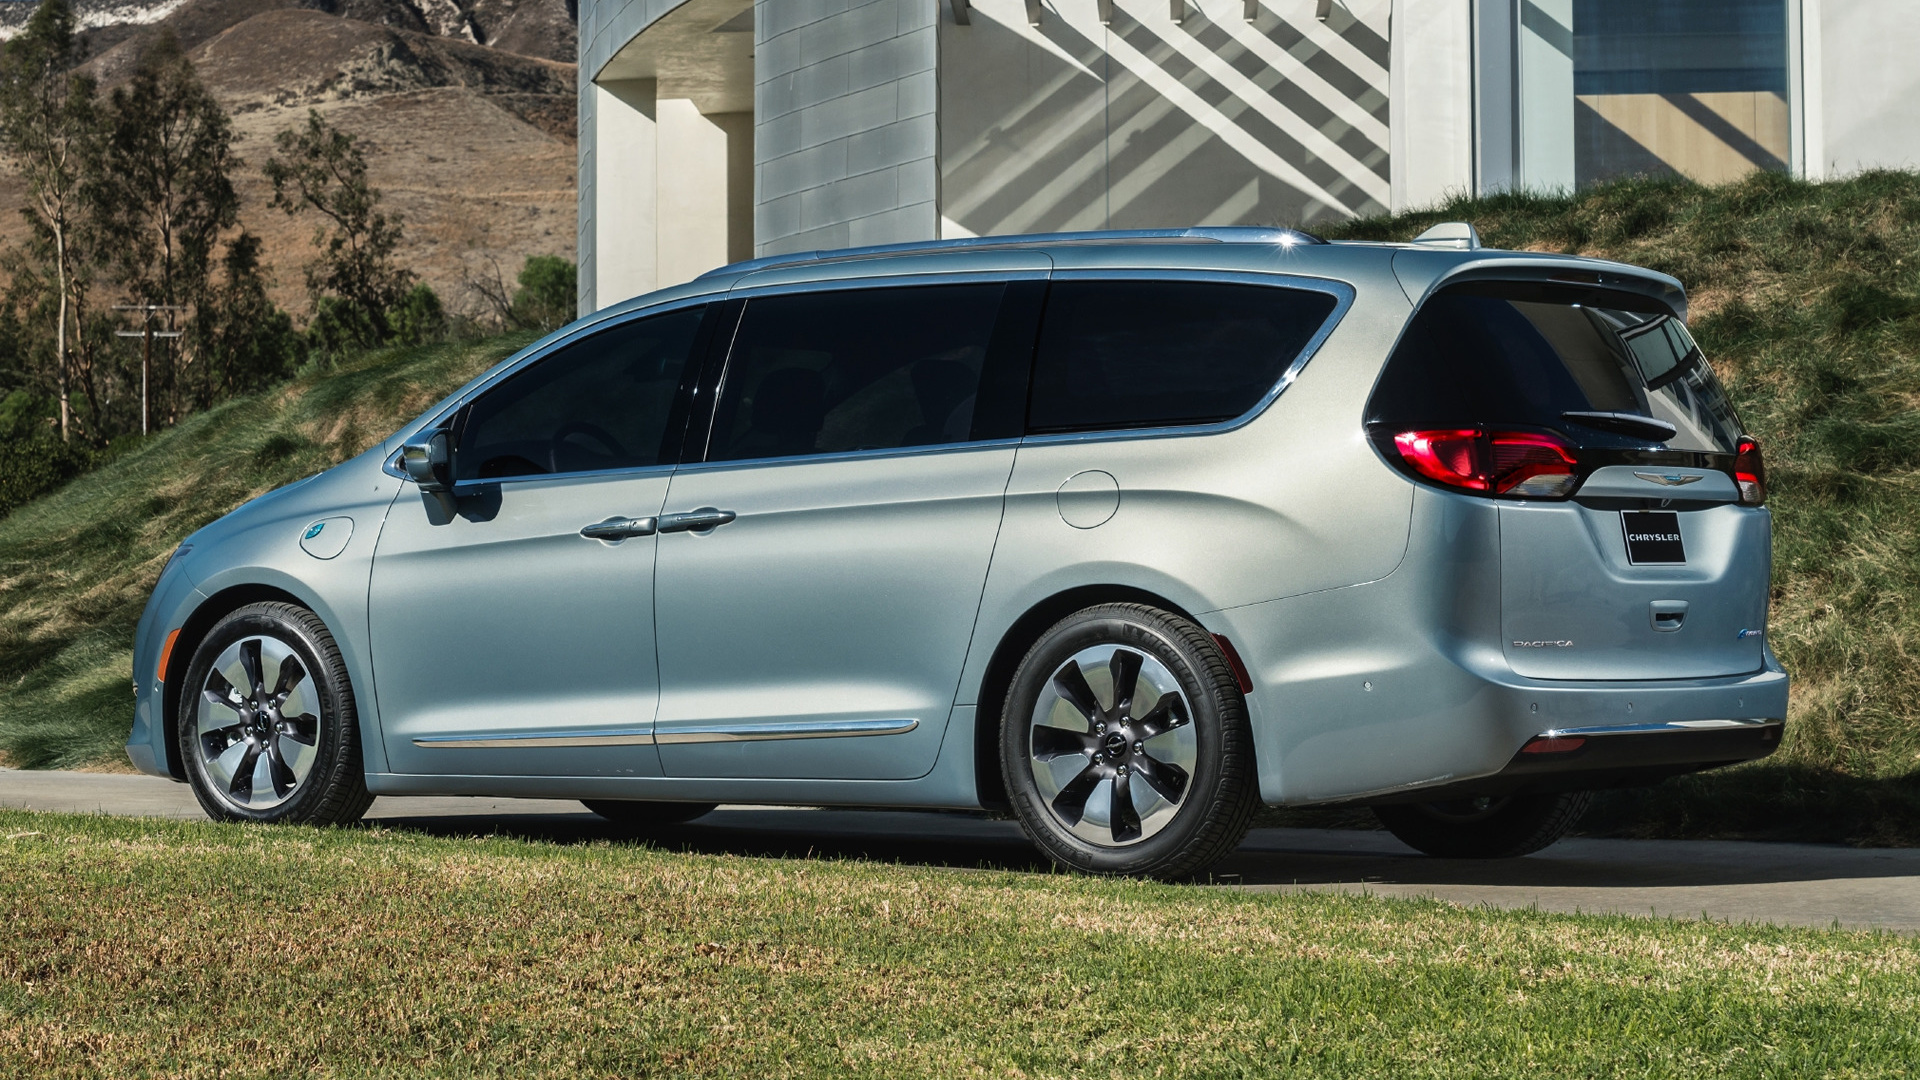 Chrysler Pacifica Hybrid (2017) Wallpapers and HD Images